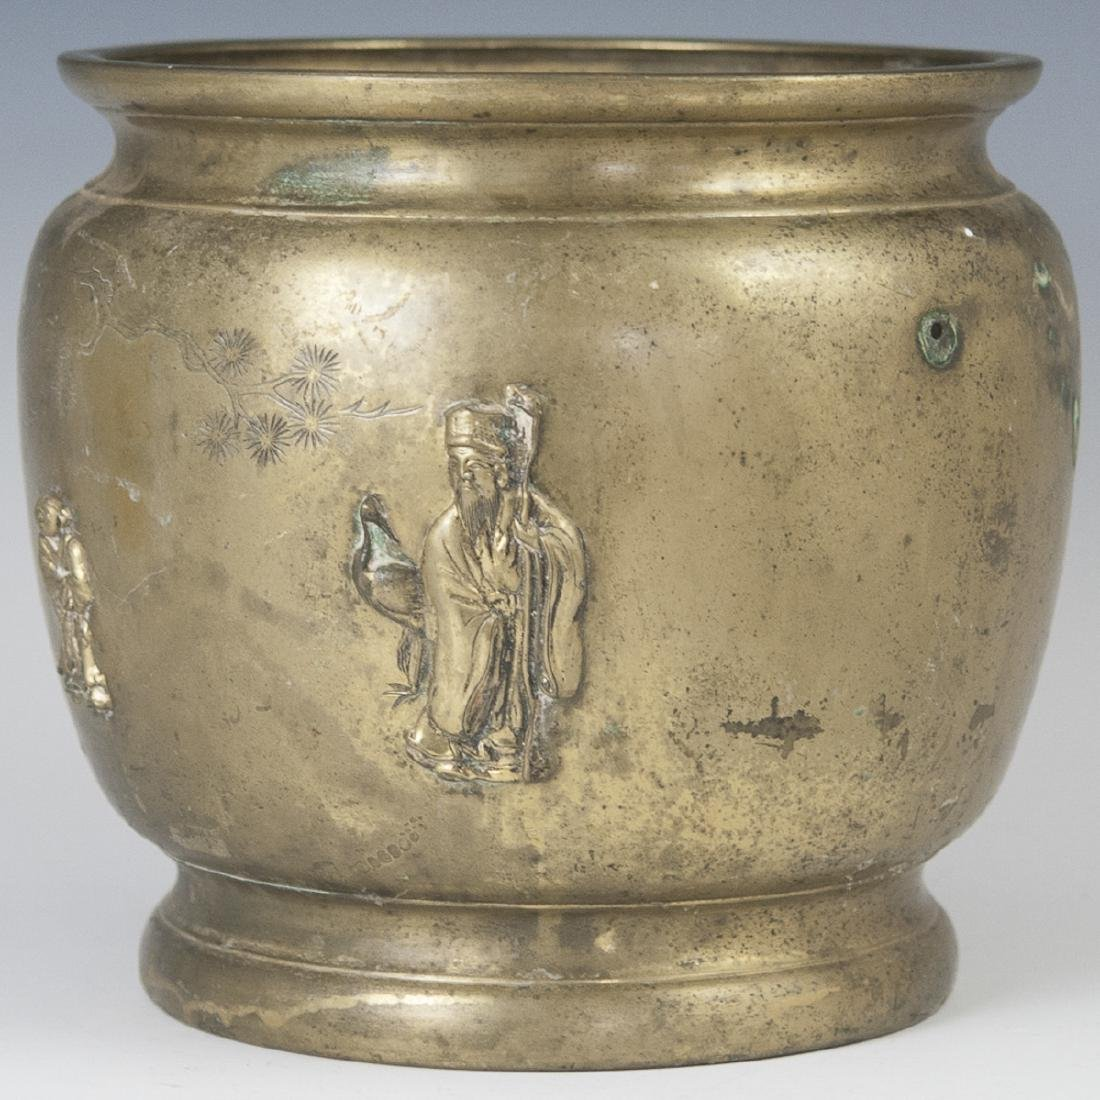 Decorative Chinese Brass Planter